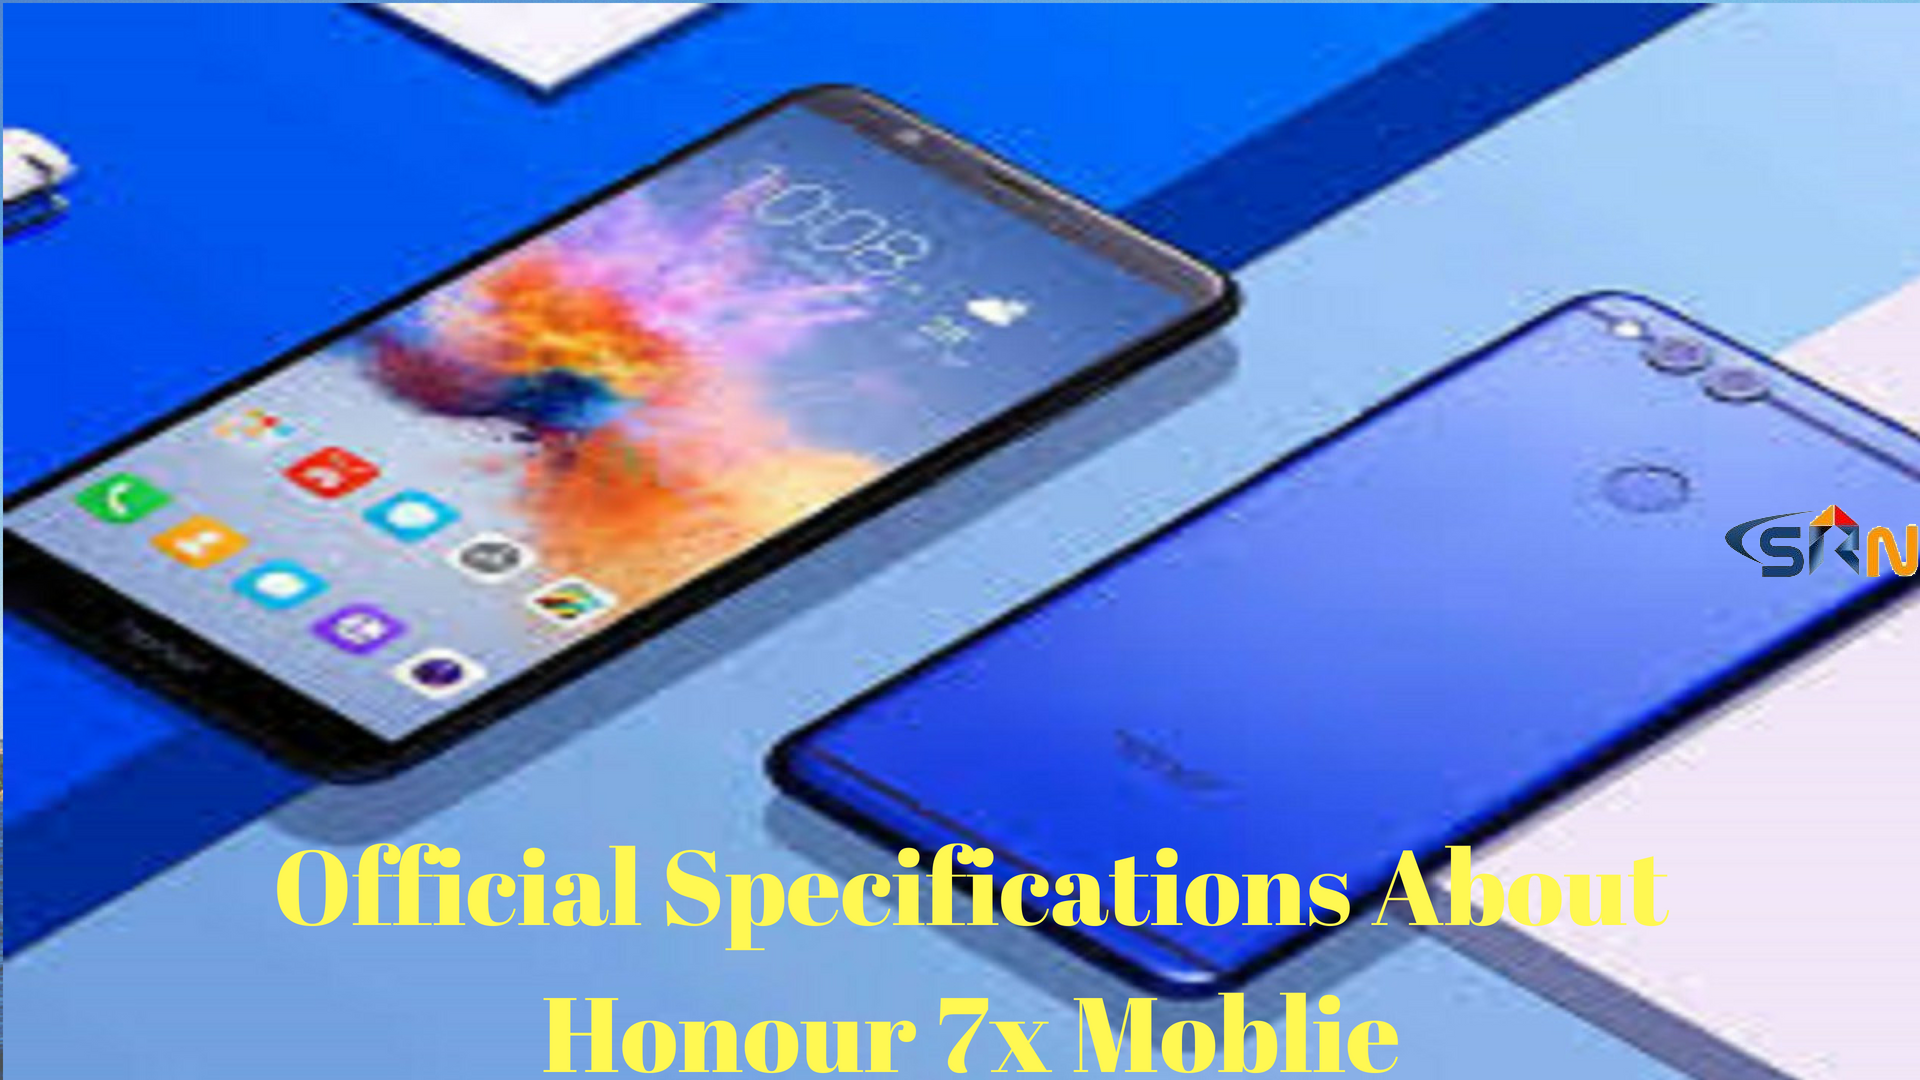 Official Specifications About Honour 7x Mobile